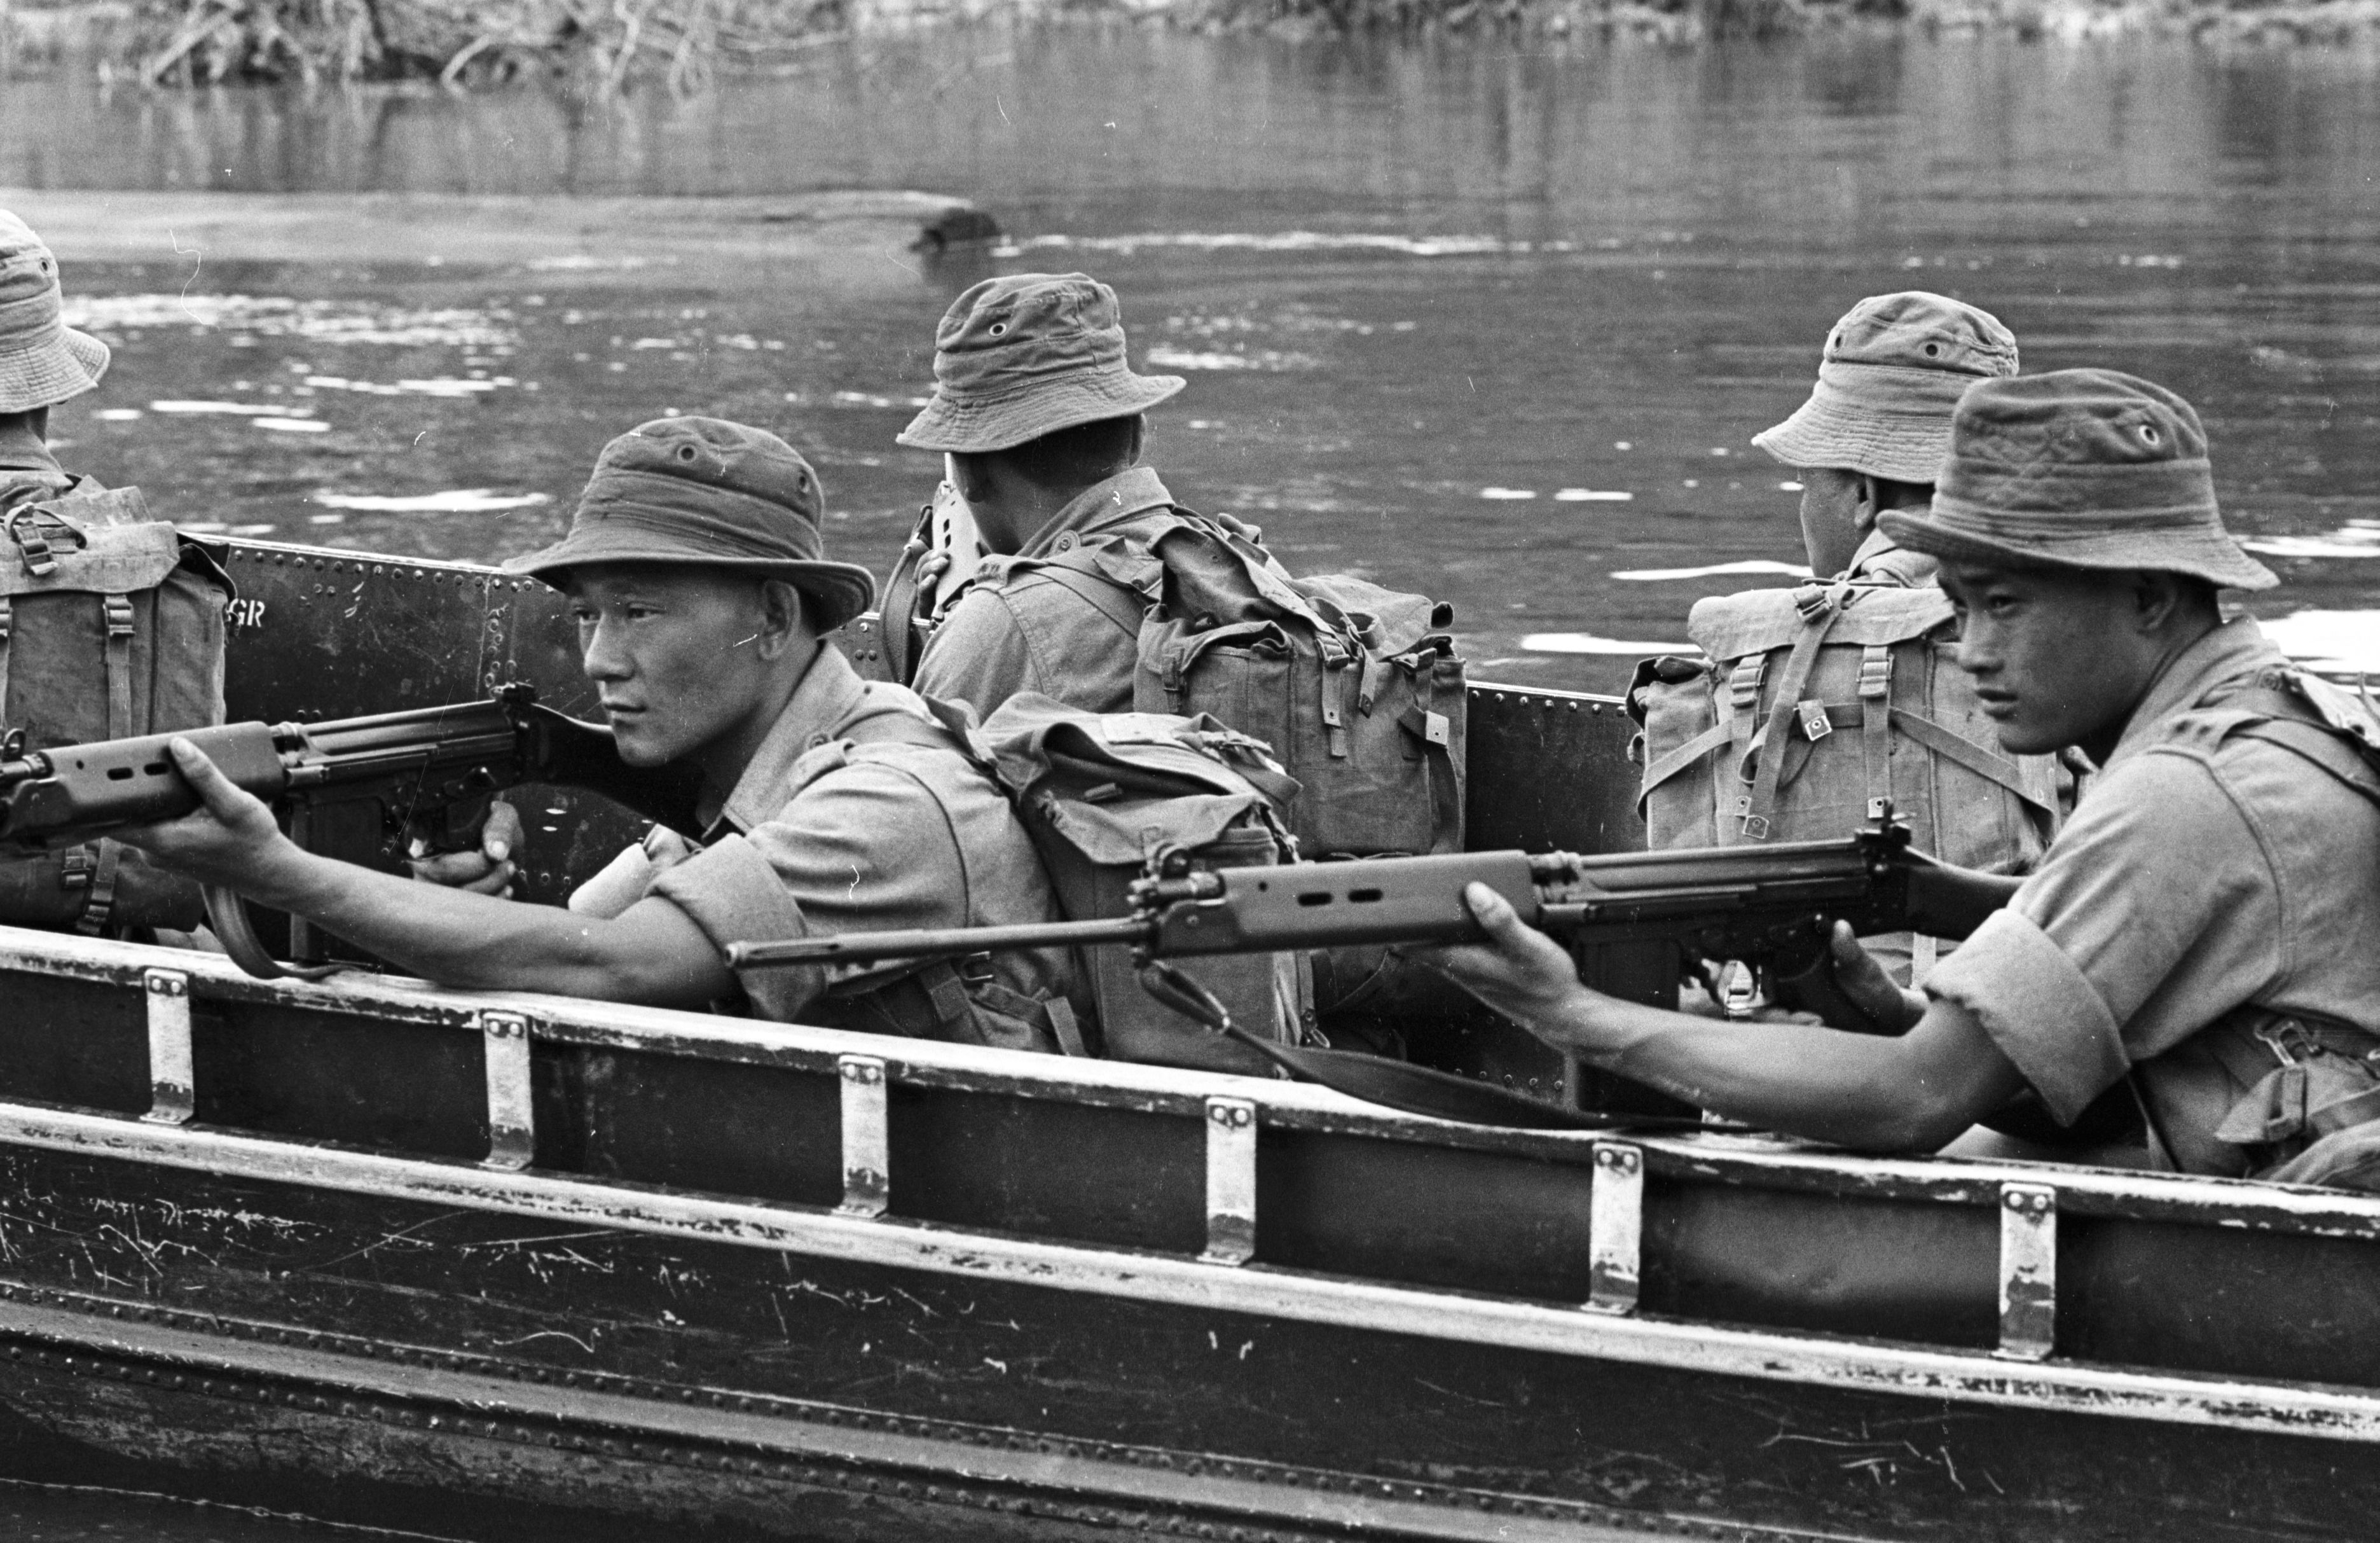 British soldiers on a boat in Borneo on March 11, 1965. Photo by Stan Meagher/Express via Getty Images.